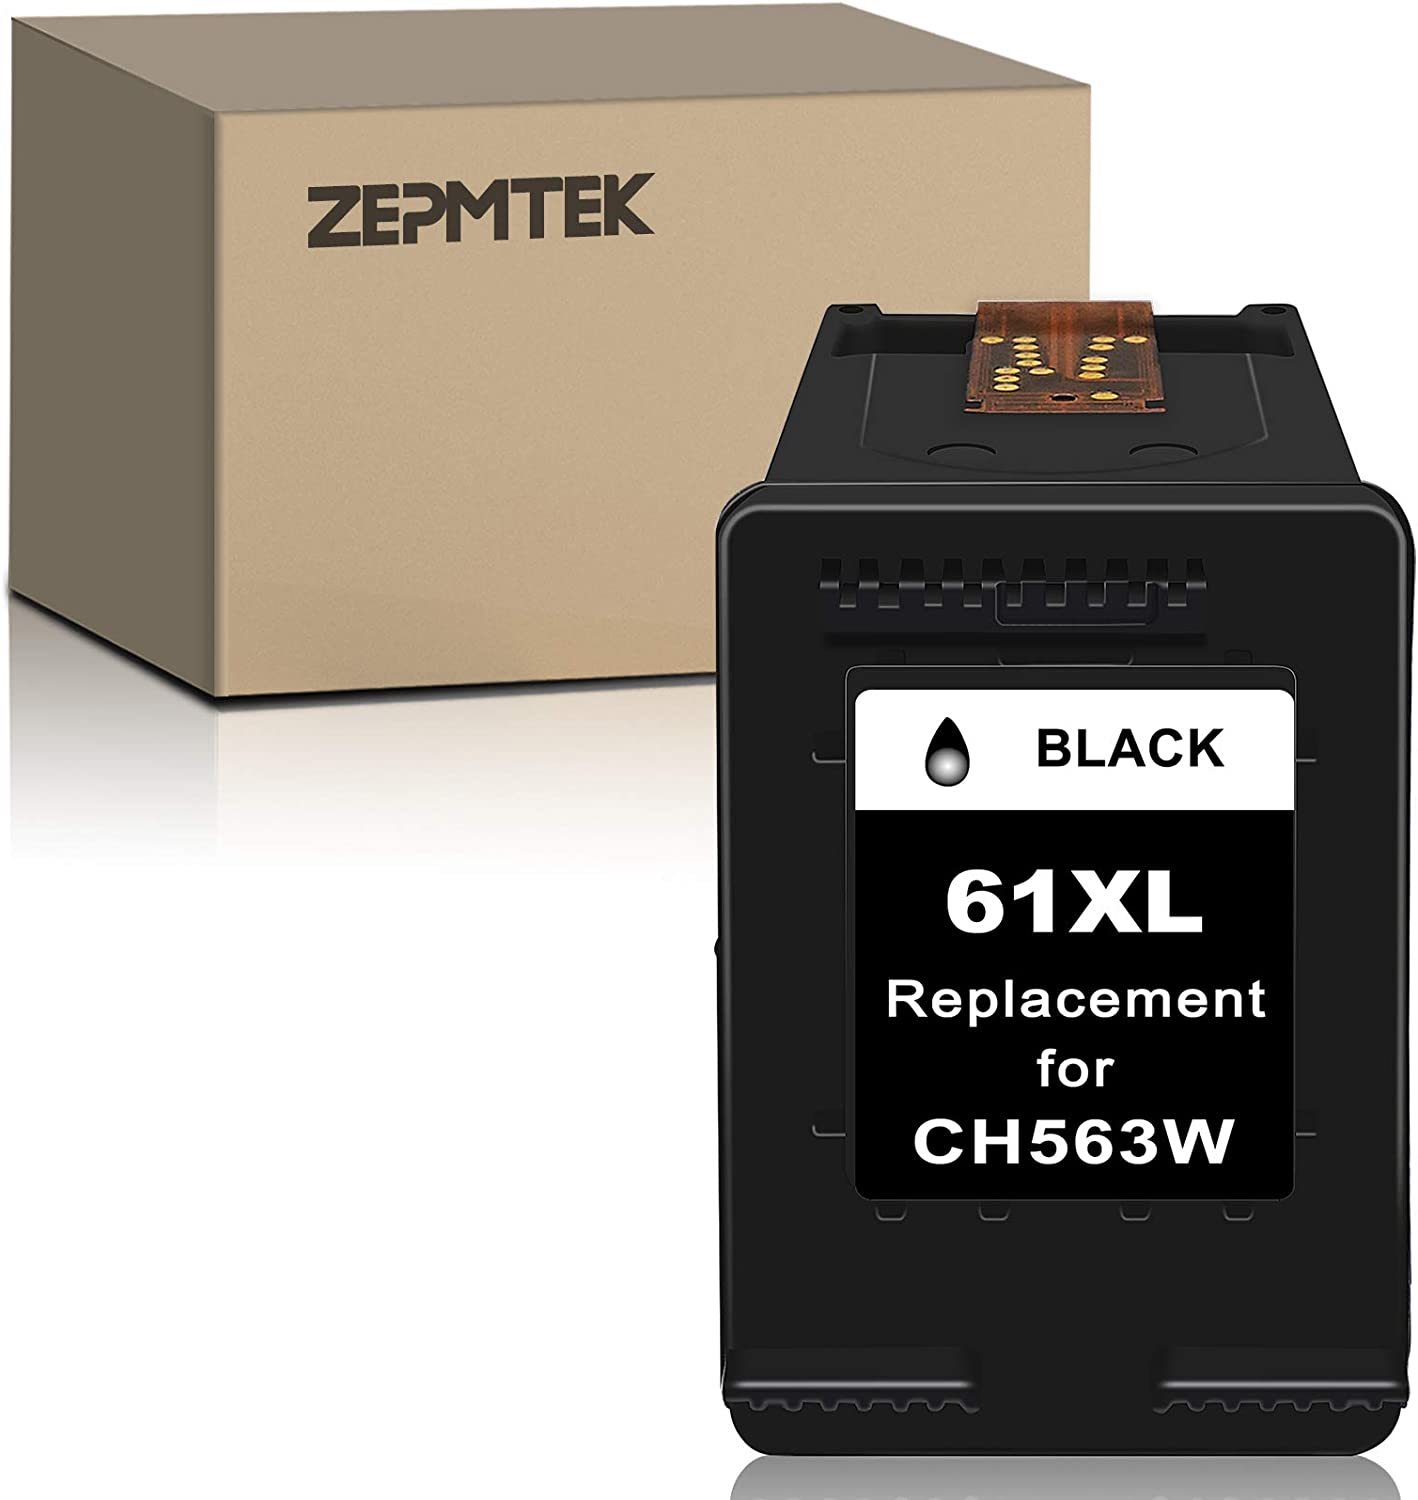 ZepmTek Remanufactured Ink Cartridge Replacement for HP 61XL 61 XL Used with Envy 4500 4502 5530 DeskJet 2512 1512 2542 2540 2544 3000 3052a 1055 3051a 2548 OfficeJet 4630 4632 Printer (1 Black)